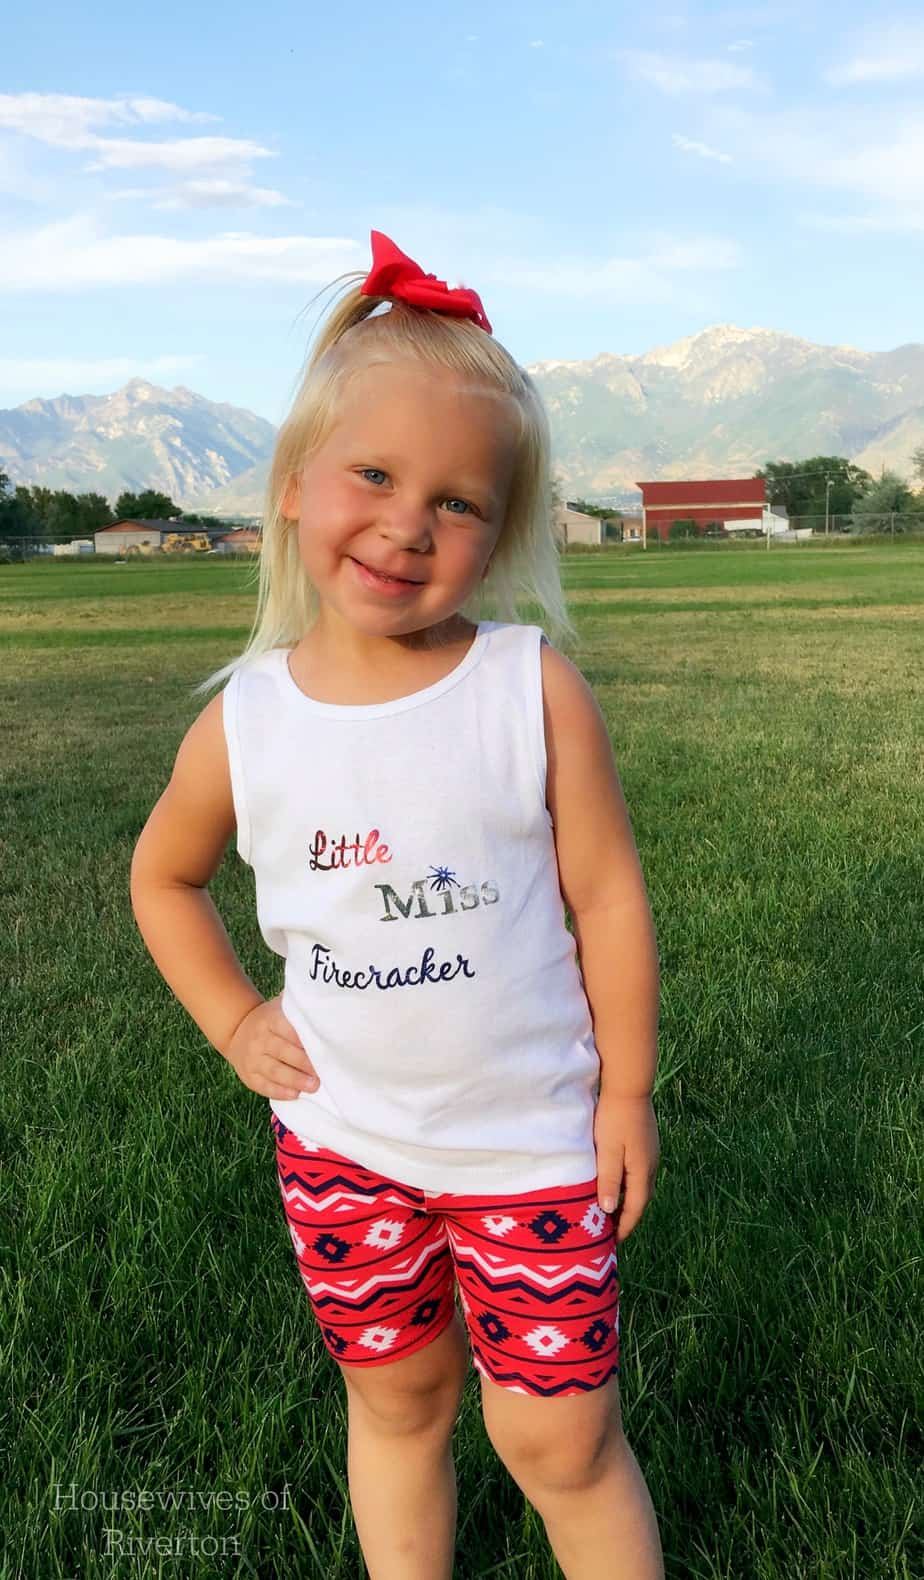 Our DIY Firecracker Shirts using the Cricut Explore Air and Design space are great for fun, 4th of July family outfits! | www.housewivesofriverton.com